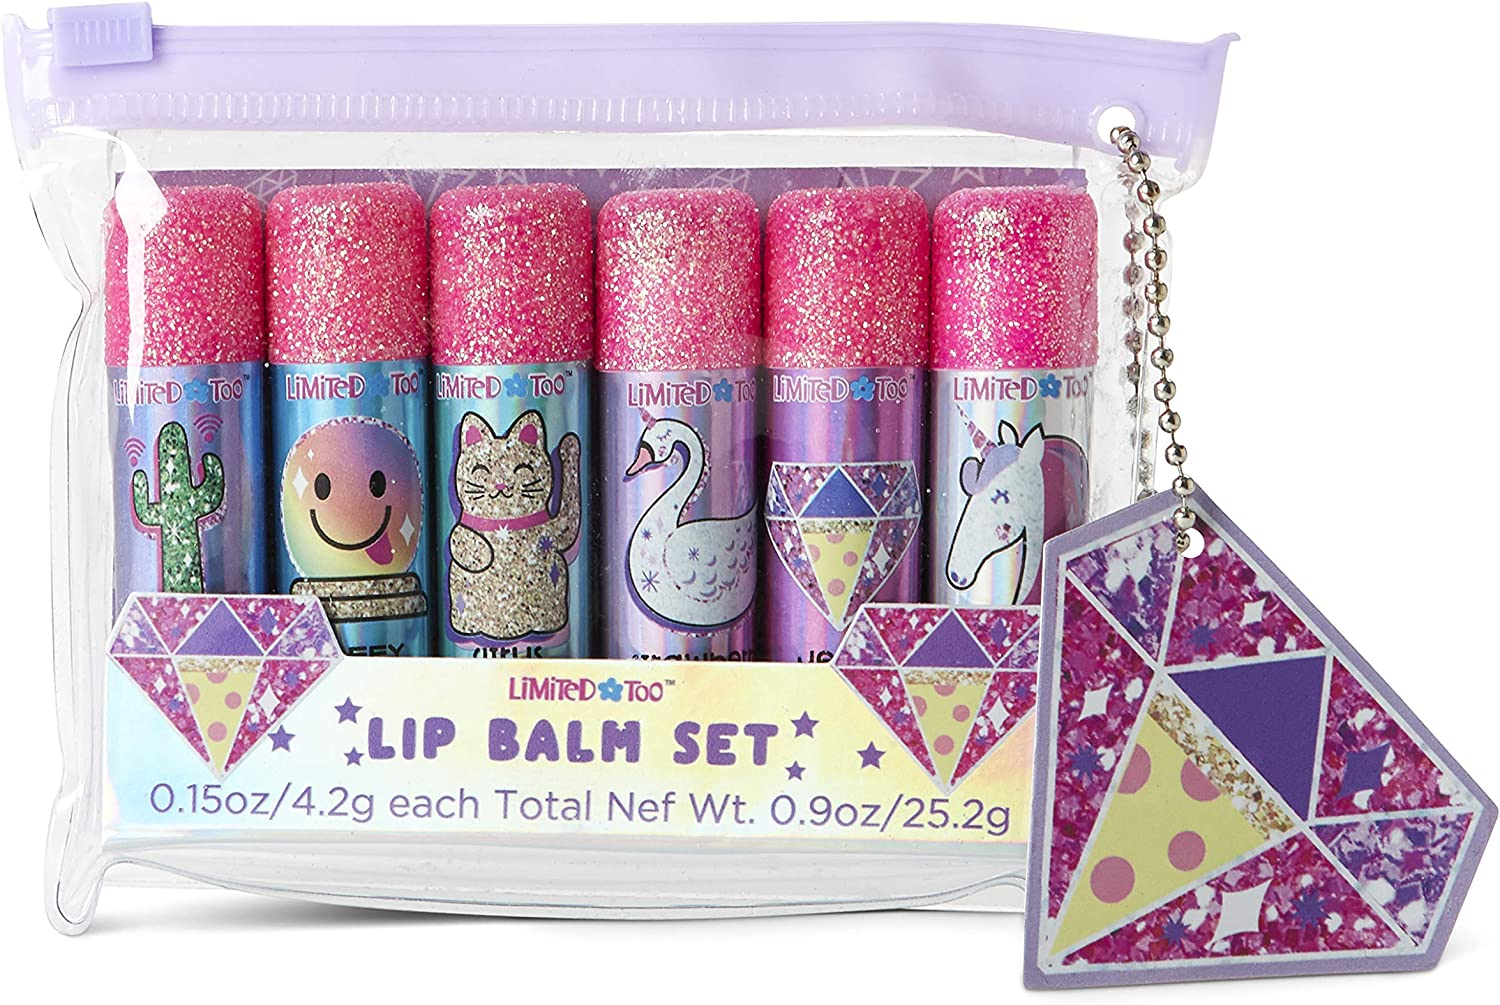 Charming Charlie Magical-Themed Flavored Lip Balm w/Beeswax Set - Princess Gift Collection, Beauty Essentials - Pack of 6: Amazon.es: Belleza